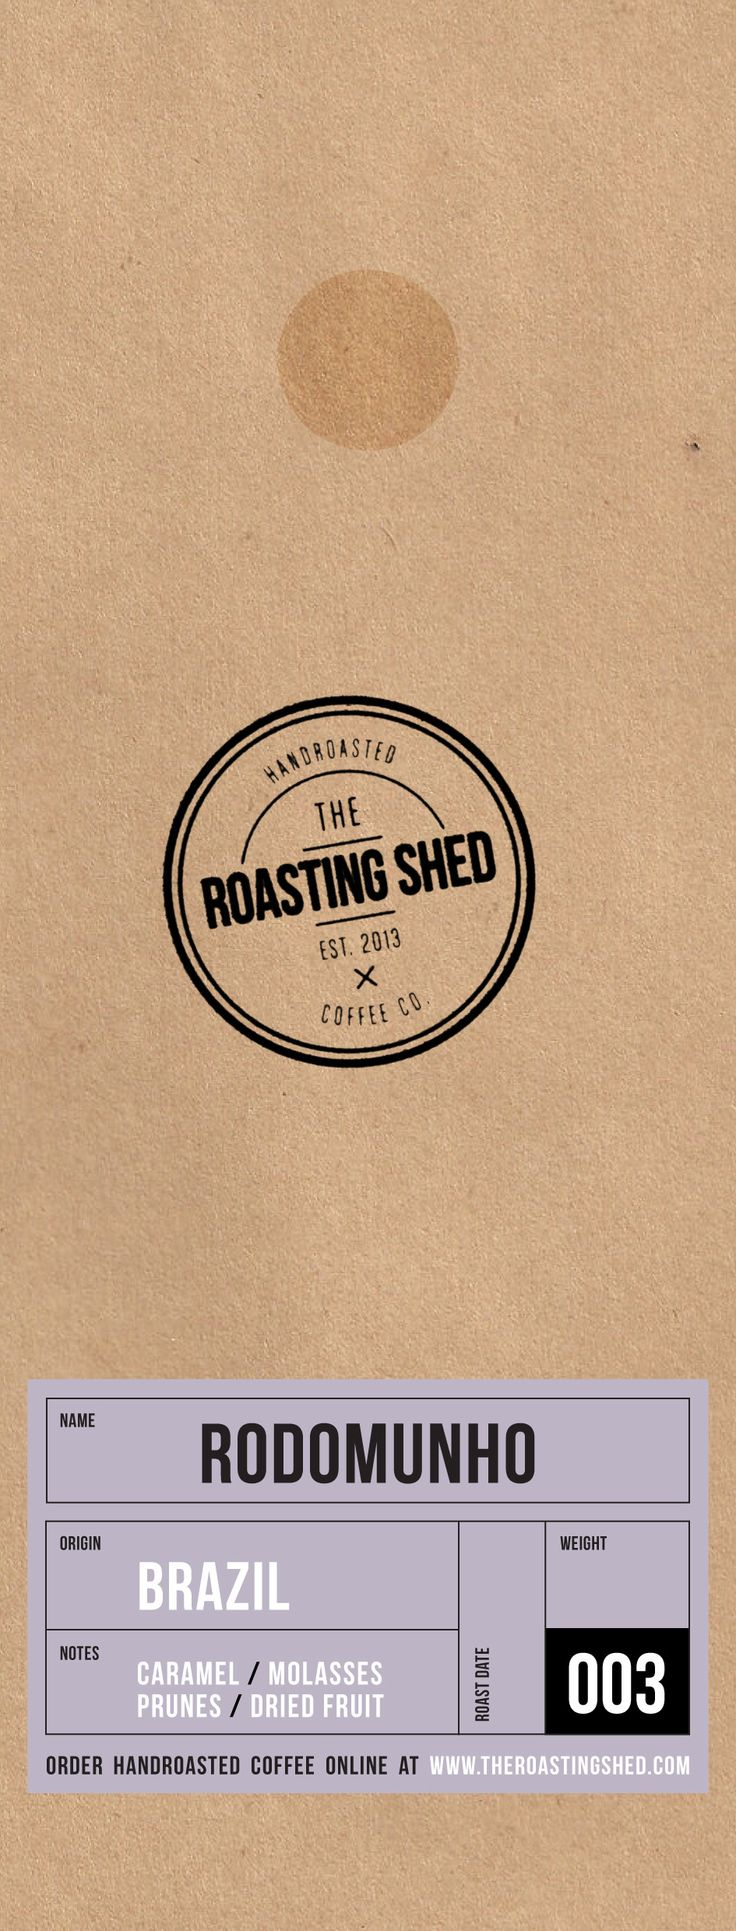 Packaging - Coffee bags from the Roasting Shed